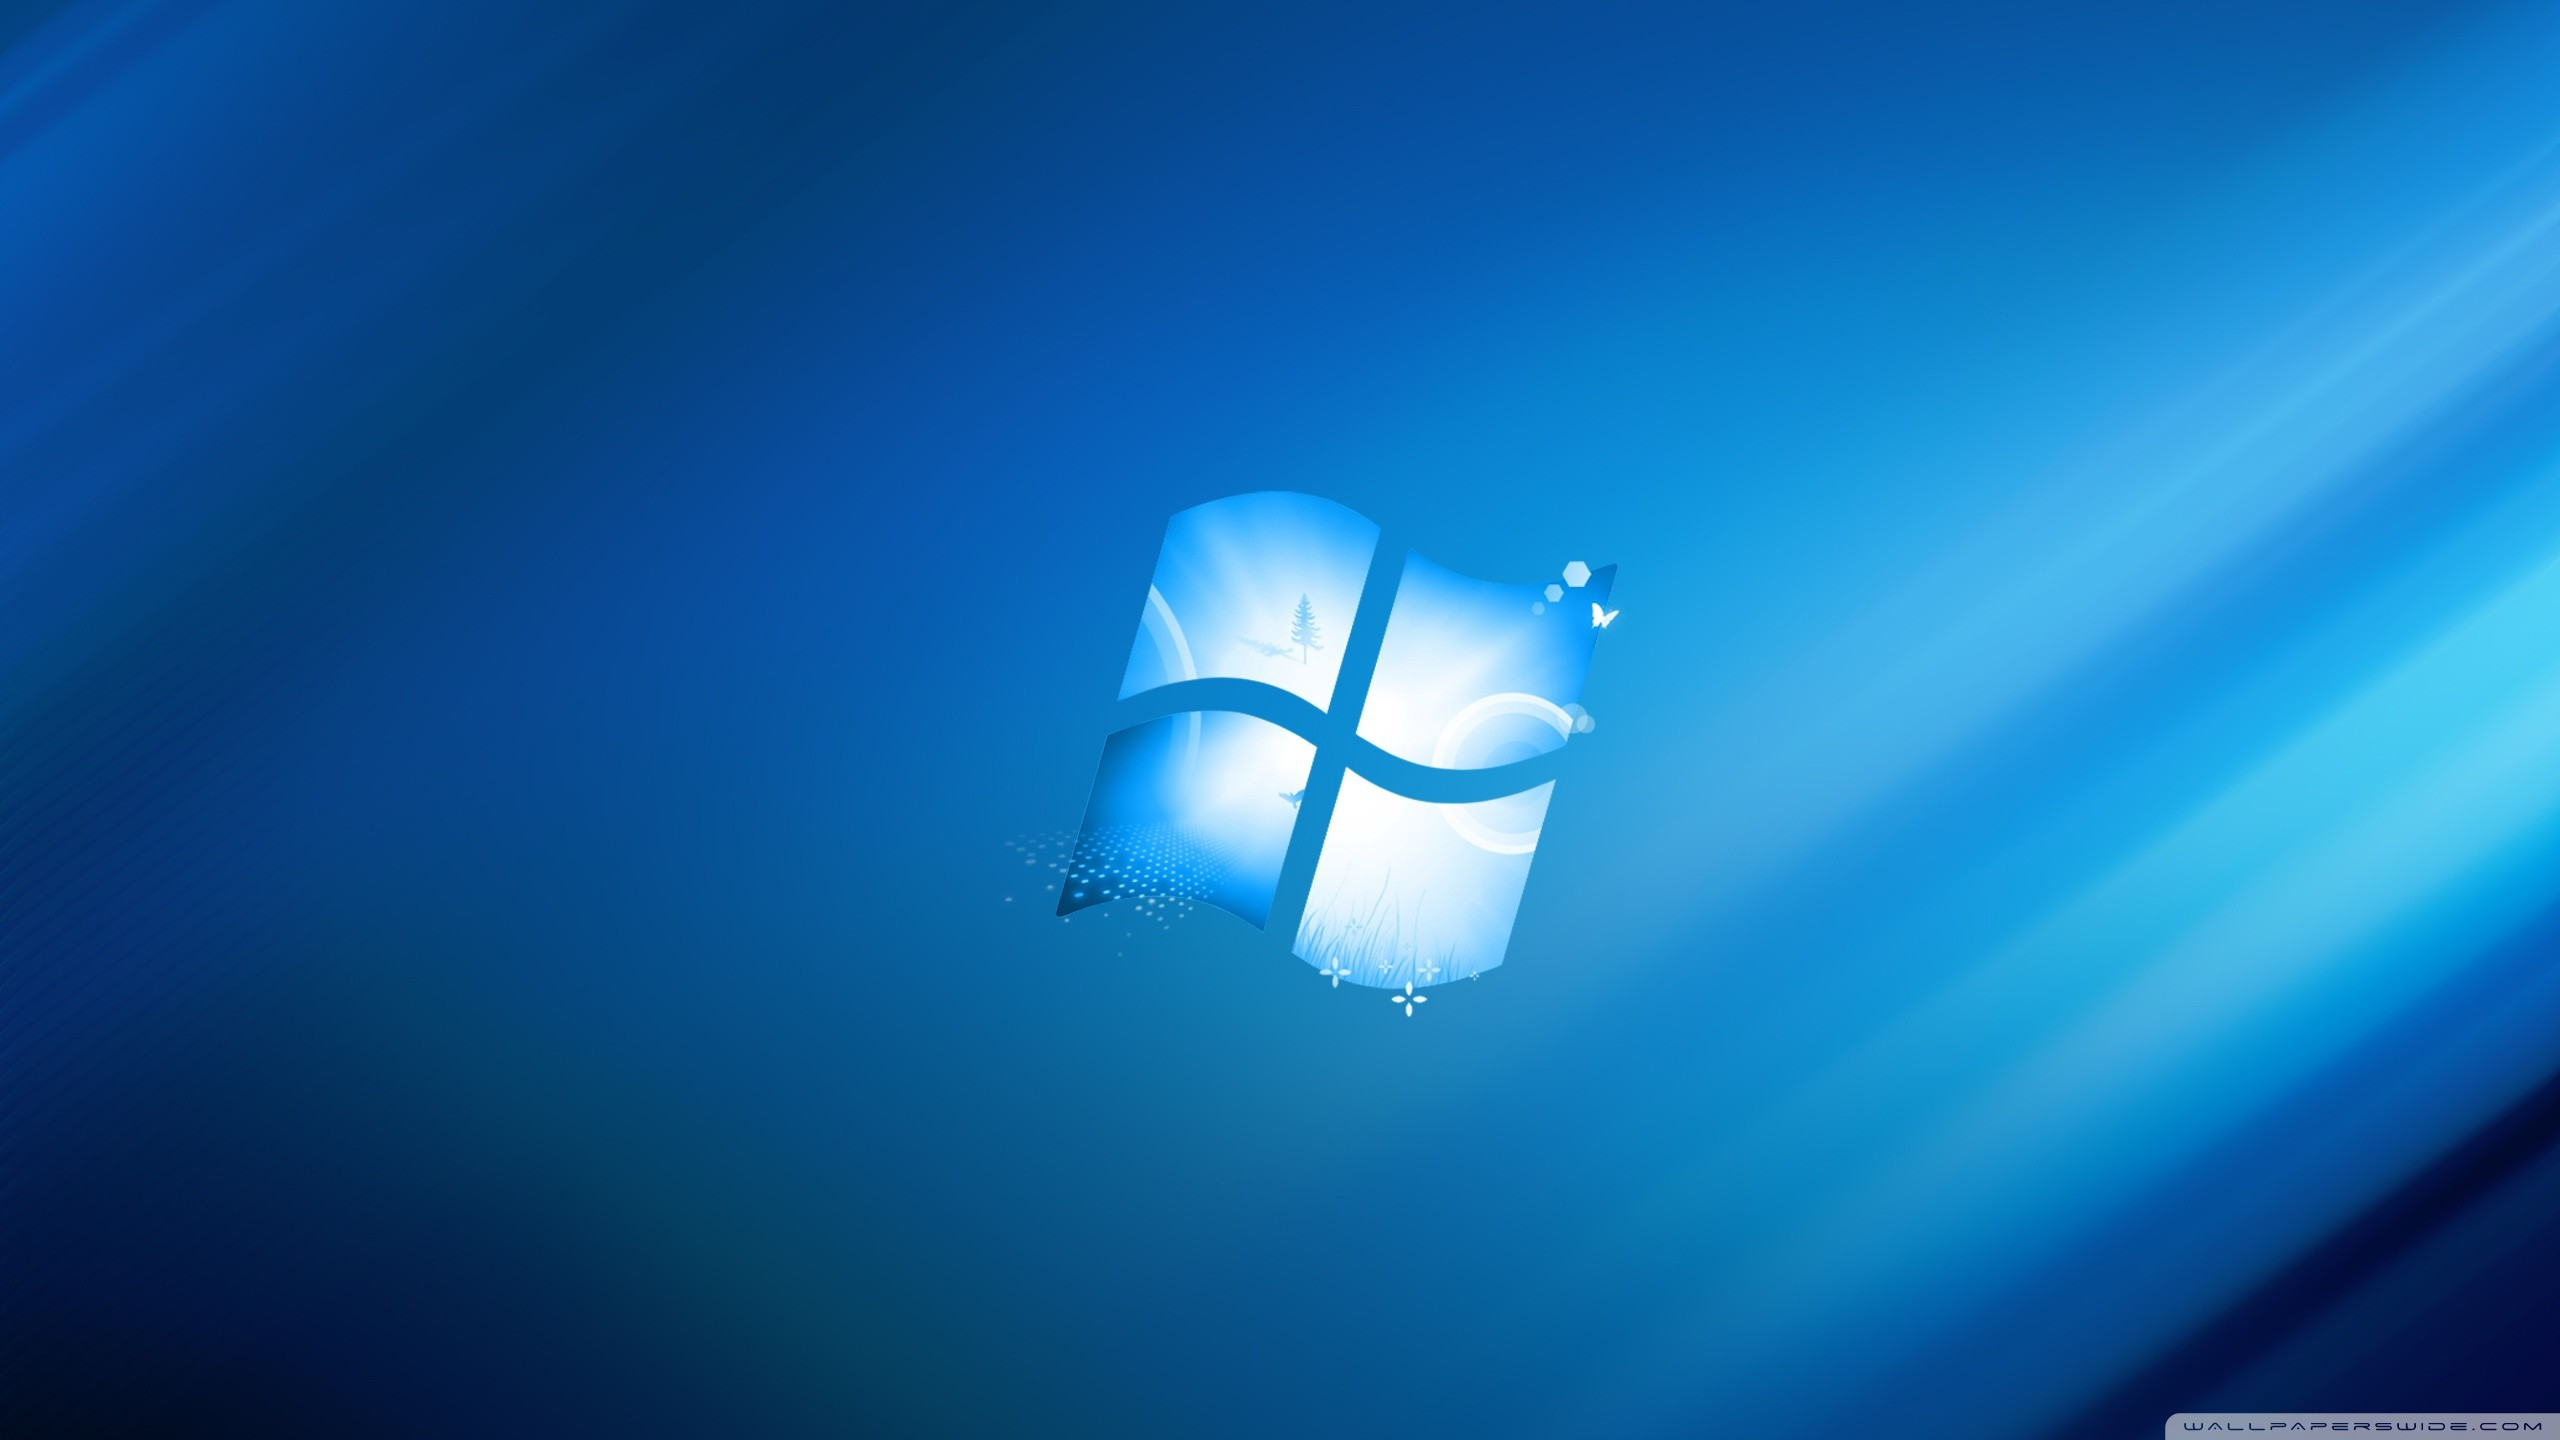 Microsoft Wallpapers Backgrounds themes (51+ images)